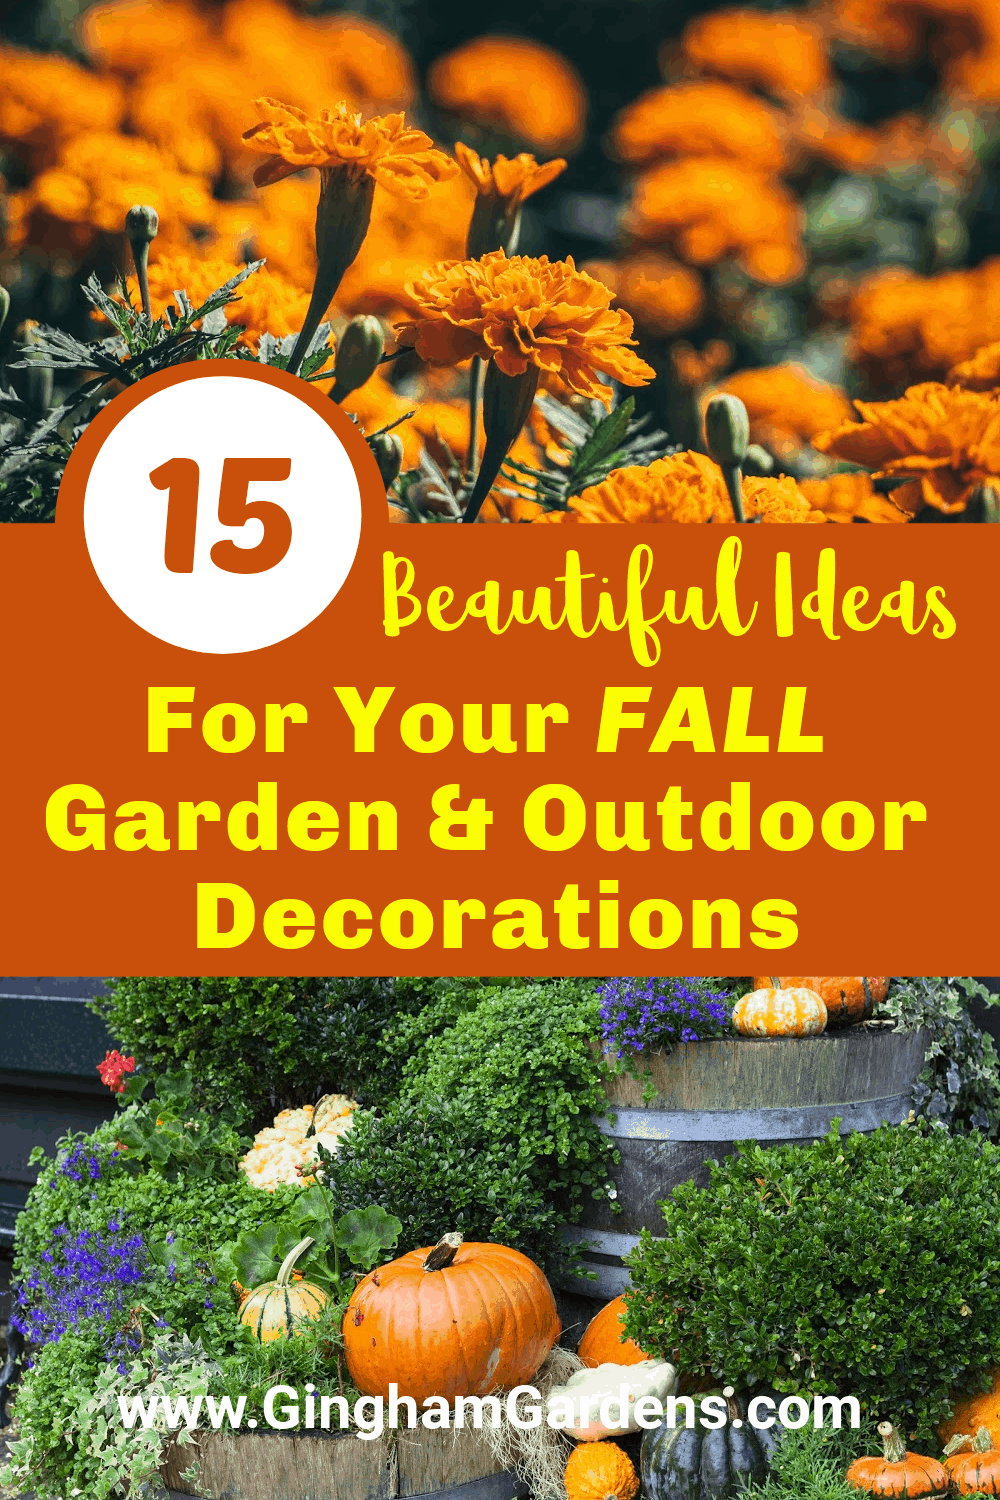 Images of Fall Flower Gardens with text overlay - 15 beautiful ideas for your Fall Garden and Outdoor Decorations